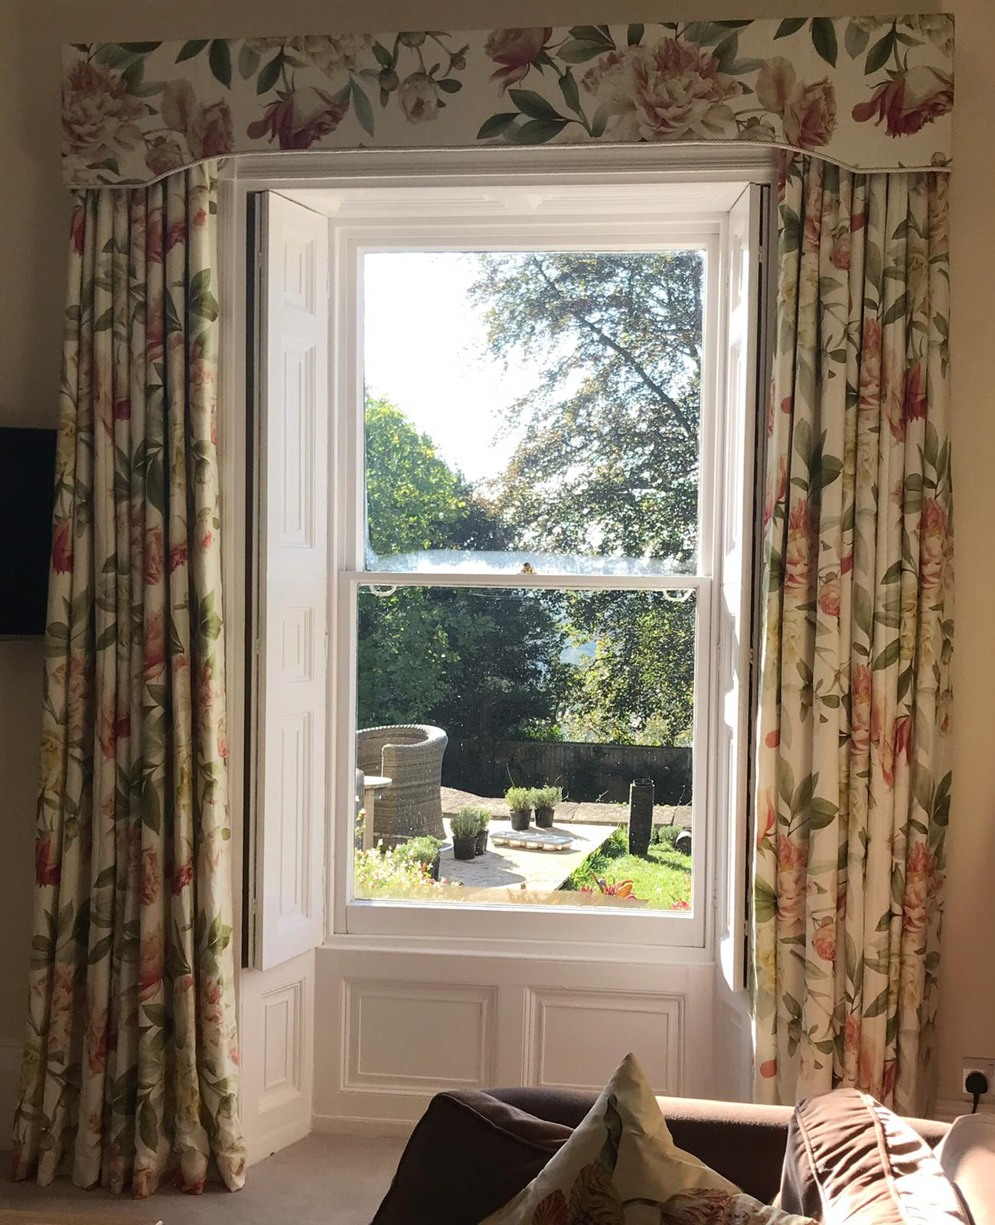 Curtains & pelmet<div style='clear:both;width:100%;height:0px;'></div><span class='cat'>Curtains Pelmets, Previous Projects</span>